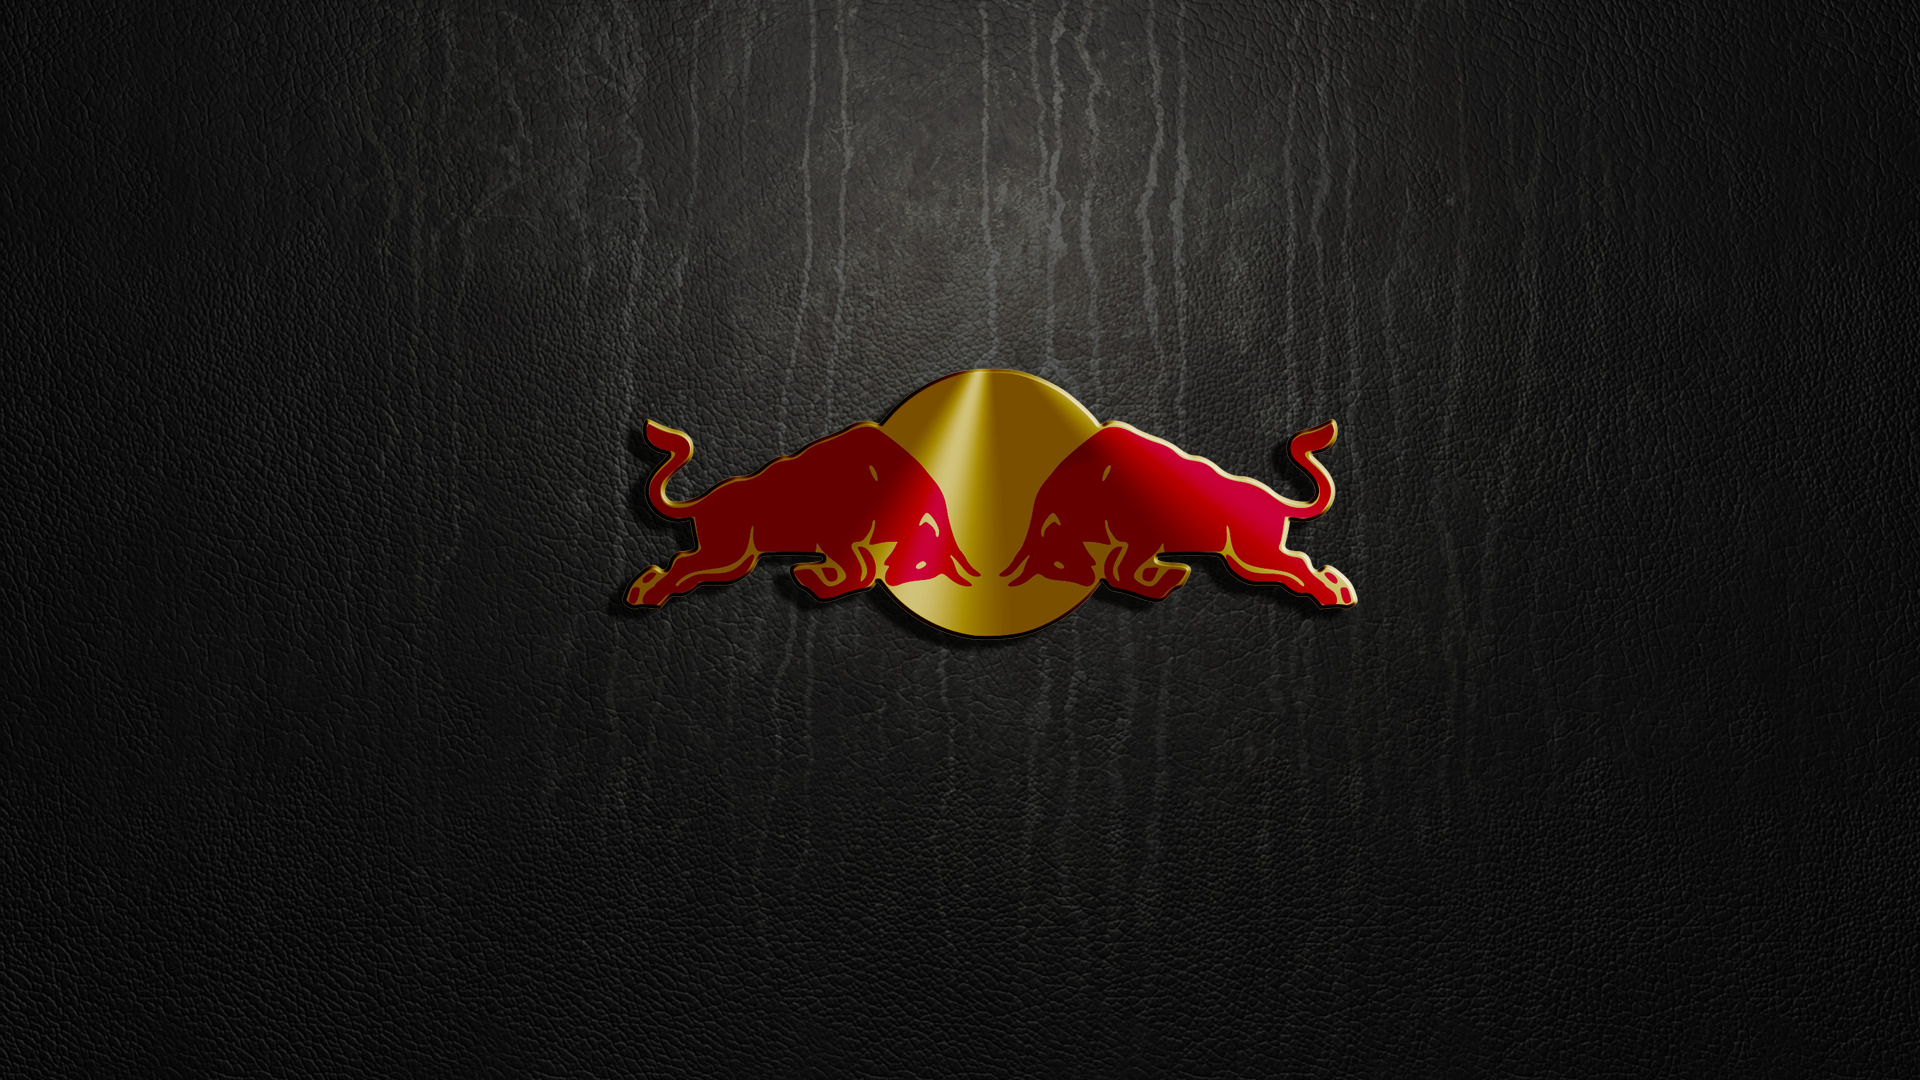 Red Bull Logo Leather Texture q wallpaper background 1920x1080